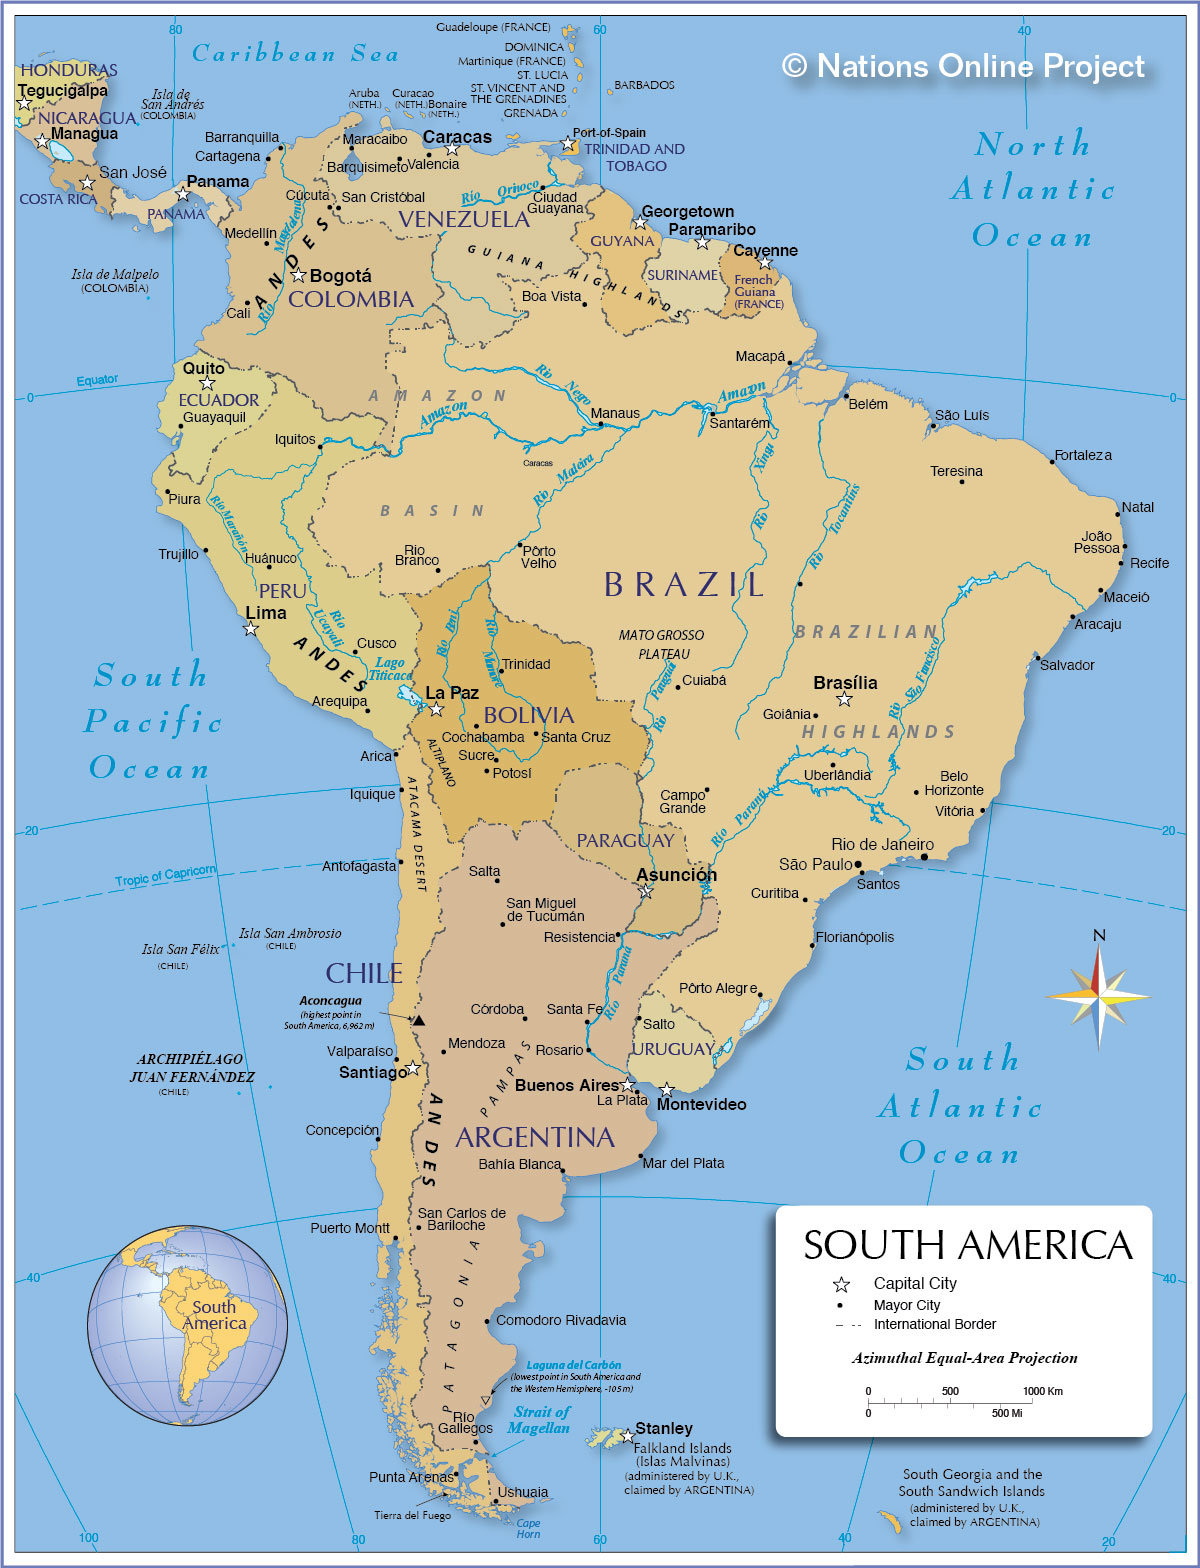 South America Political Map Political Map of South America (1200 px)   Nations Online Project South America Political Map